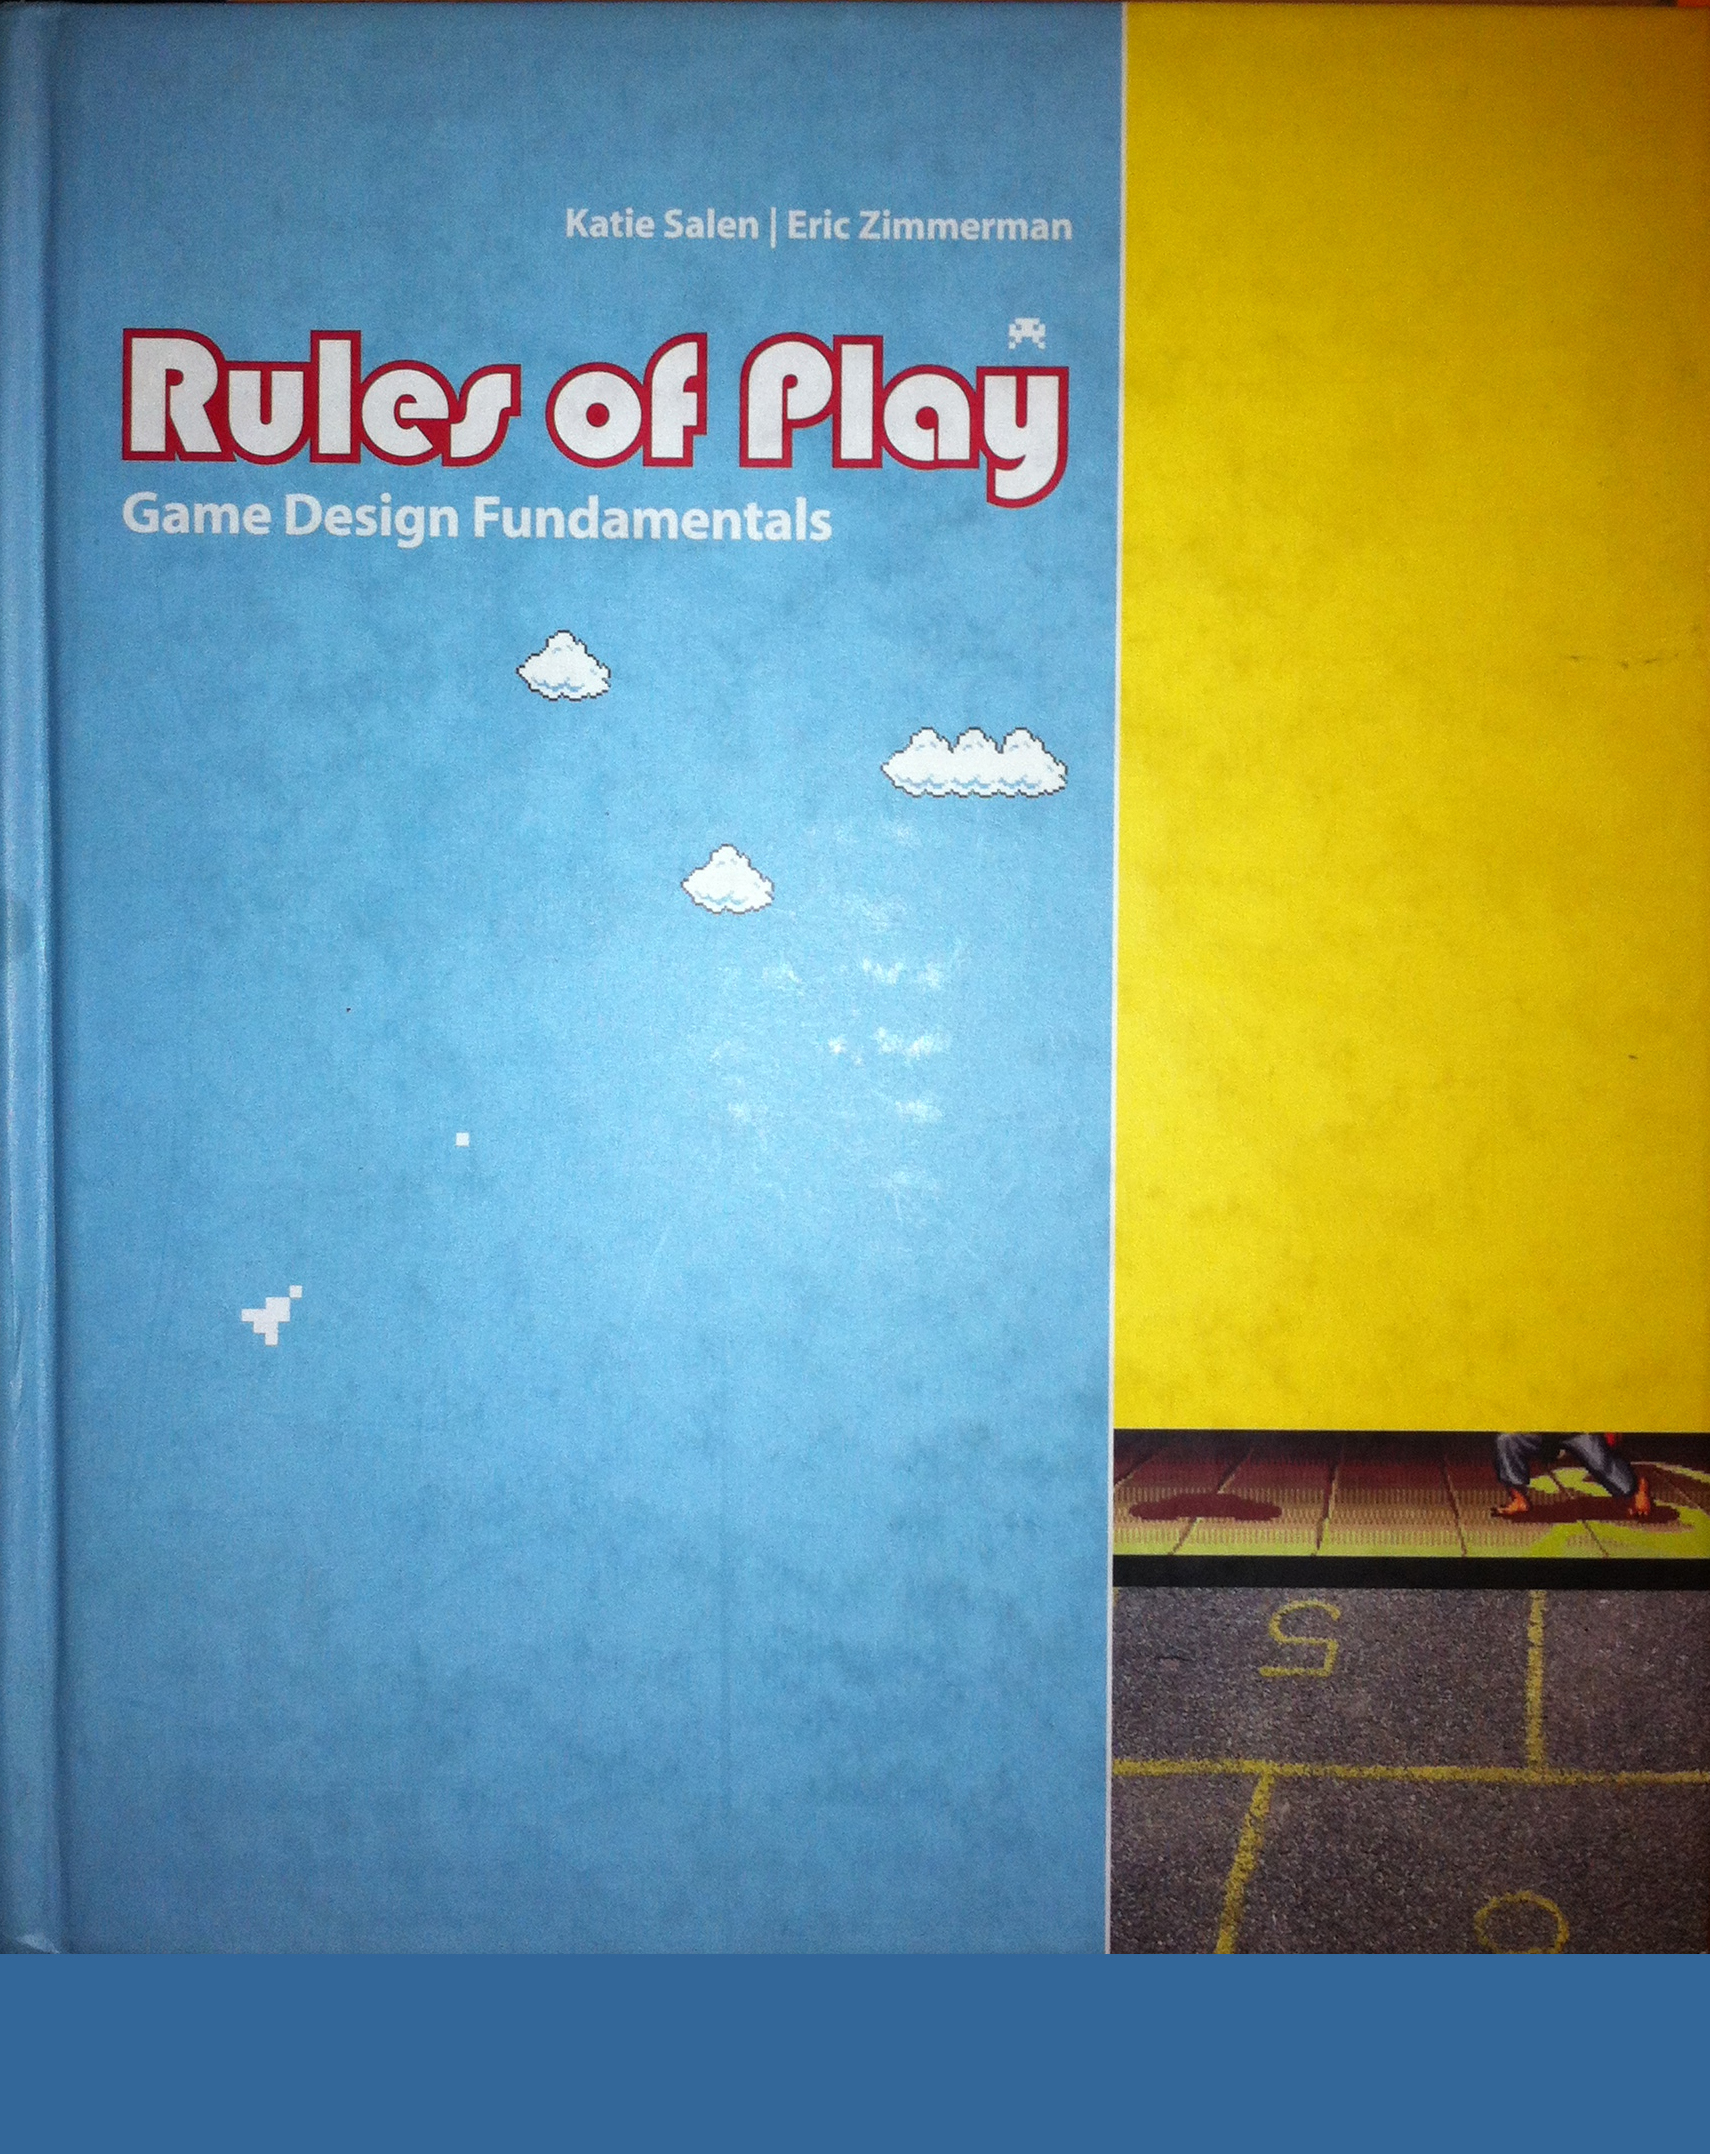 Rules of Play: Game Design Fundamentals by Katie Salen and Eric Zimmerman